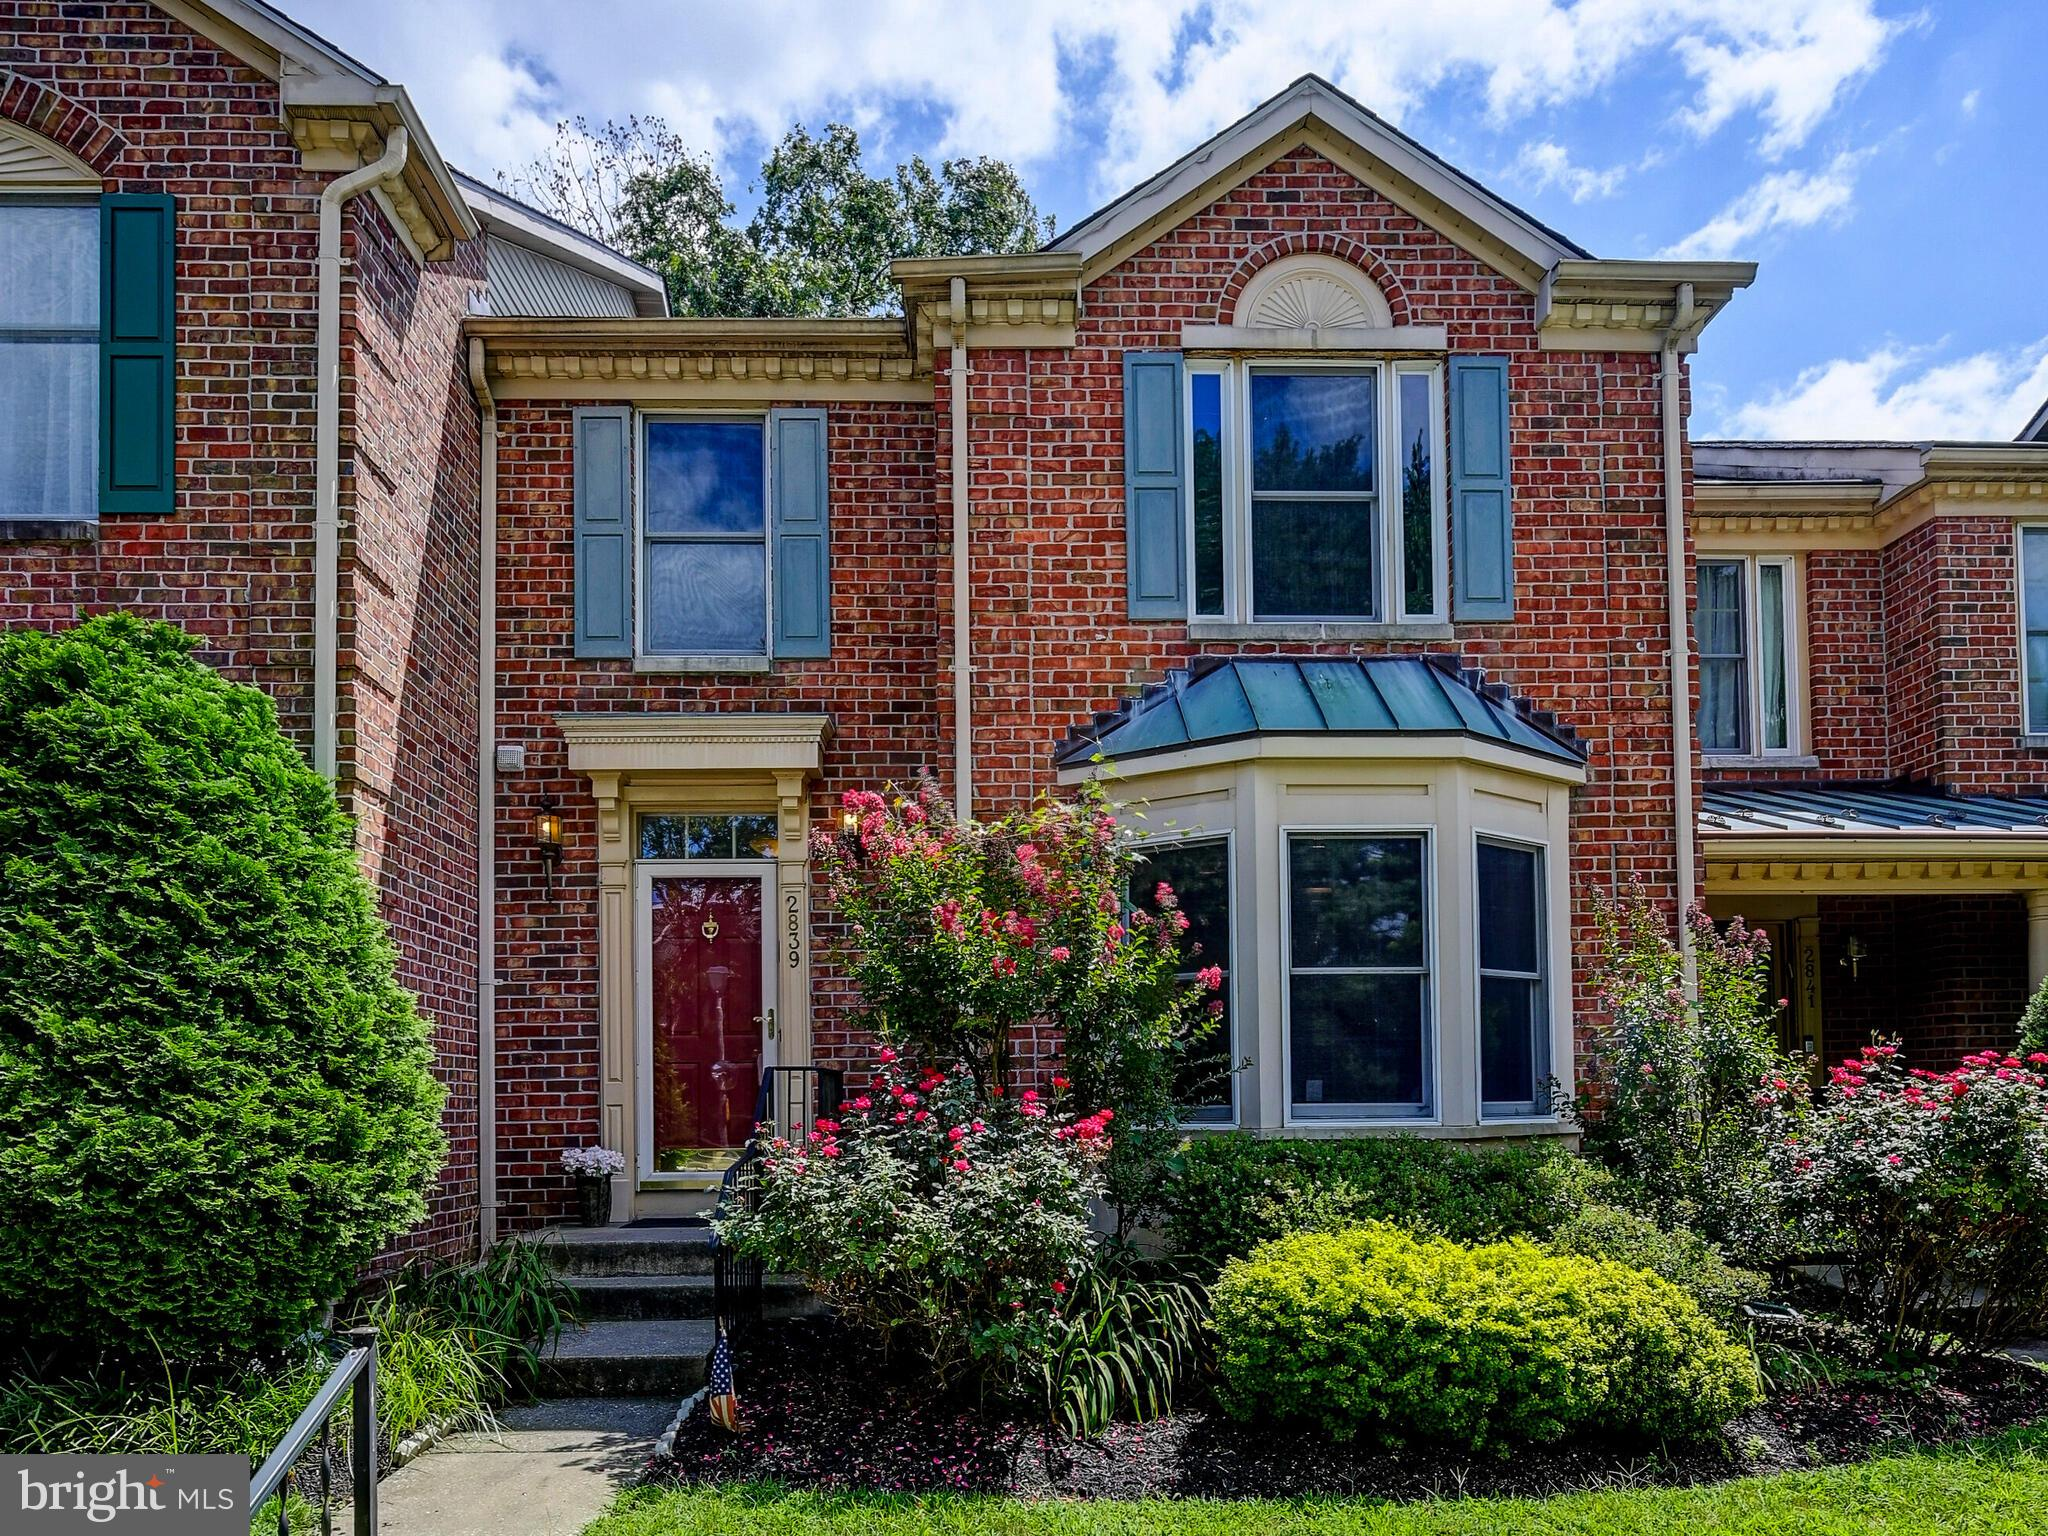 RARELY AVAILABLE! ONE OF THE LARGEST BRICK 3 BEDROOM TOWNHOMES IN GREENSPRING EAST WITH OVER 2,000 S